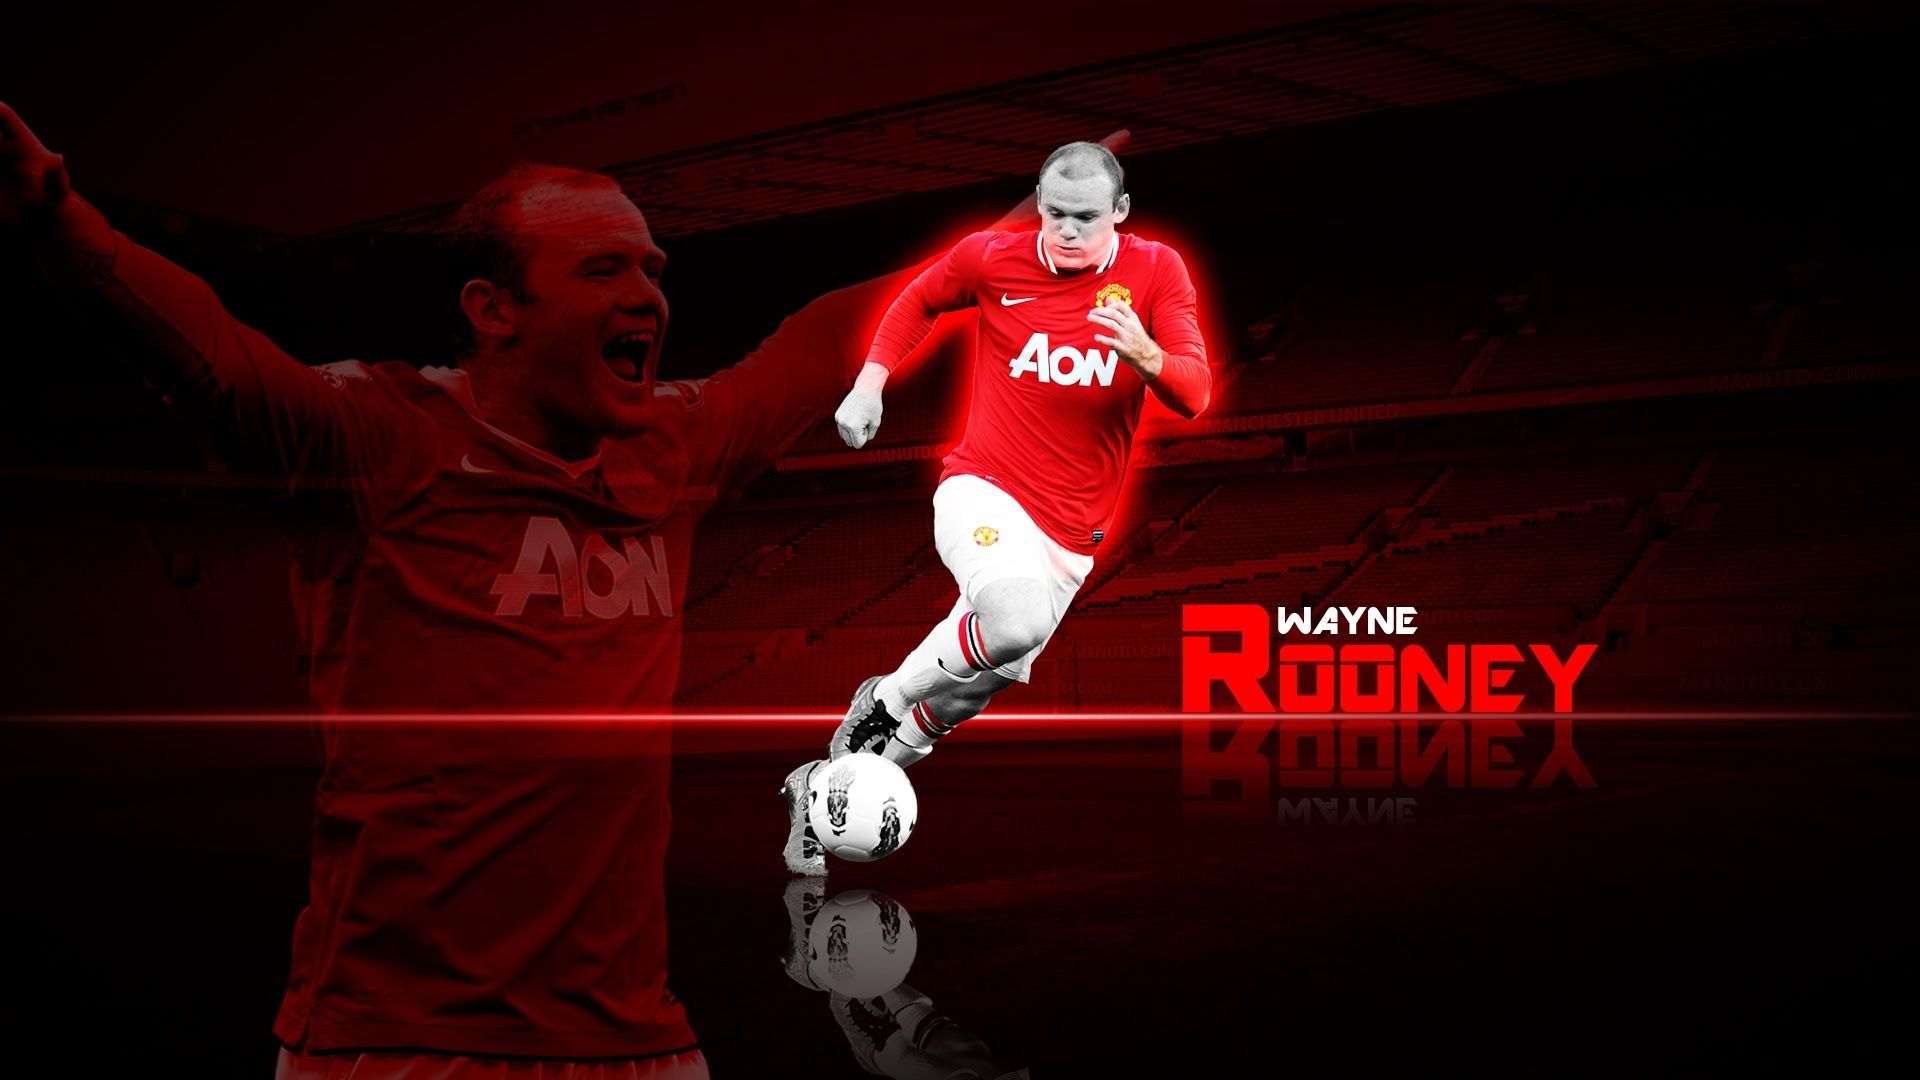 wayne rooney awesome red color photoshop tutorial photoshop